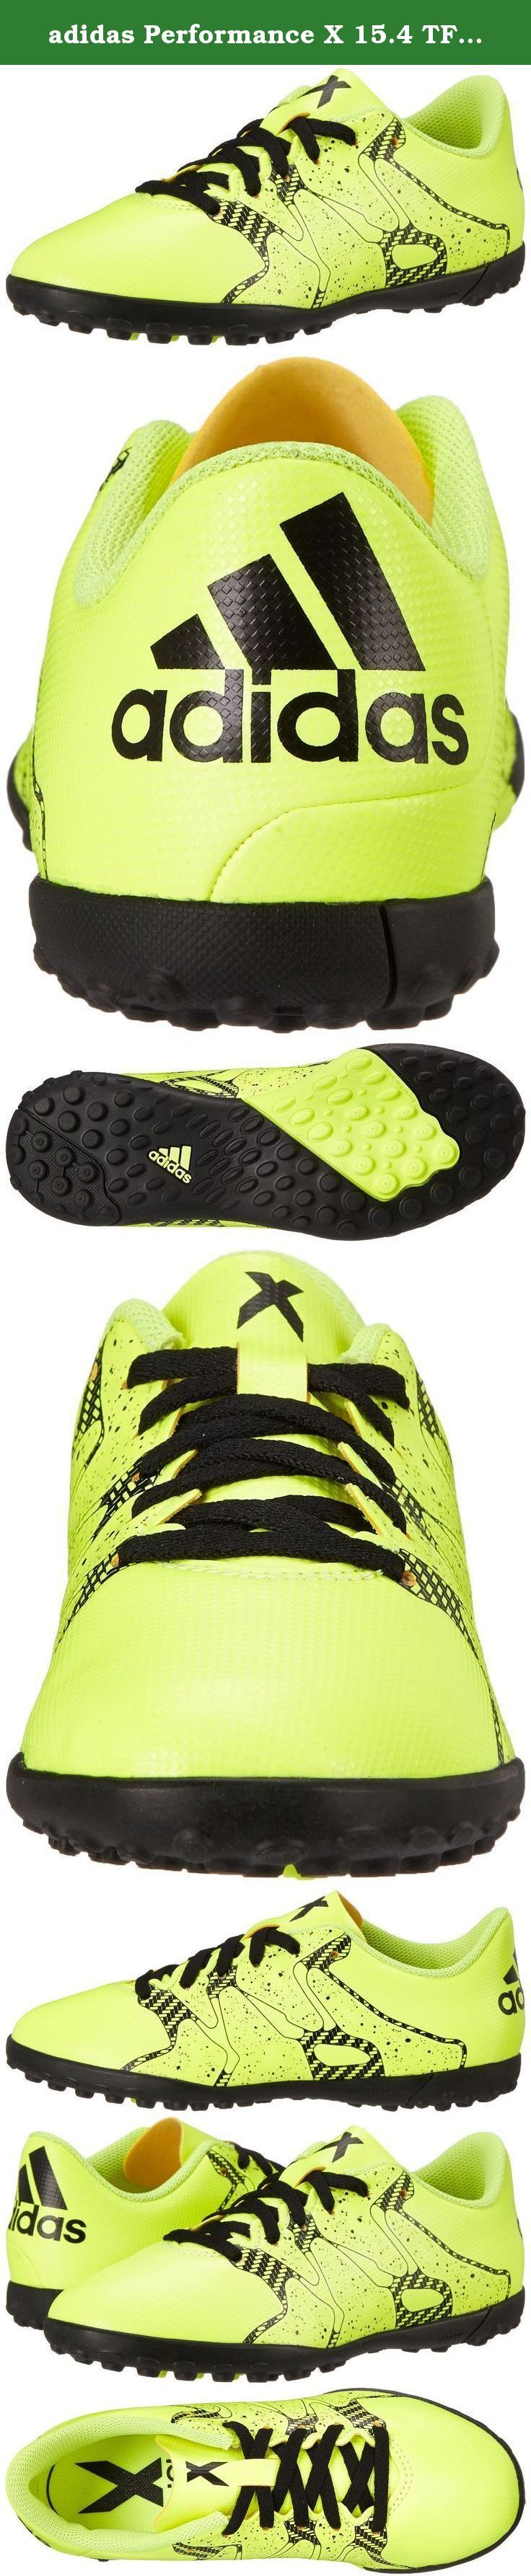 adidas Performance X 15.4 TF J Soccer Shoe (Little Kid/Big Kid), Solar Yellow/Solar Yellow/Black, 3 M US Little Kid. Kids Soccer Shoe.